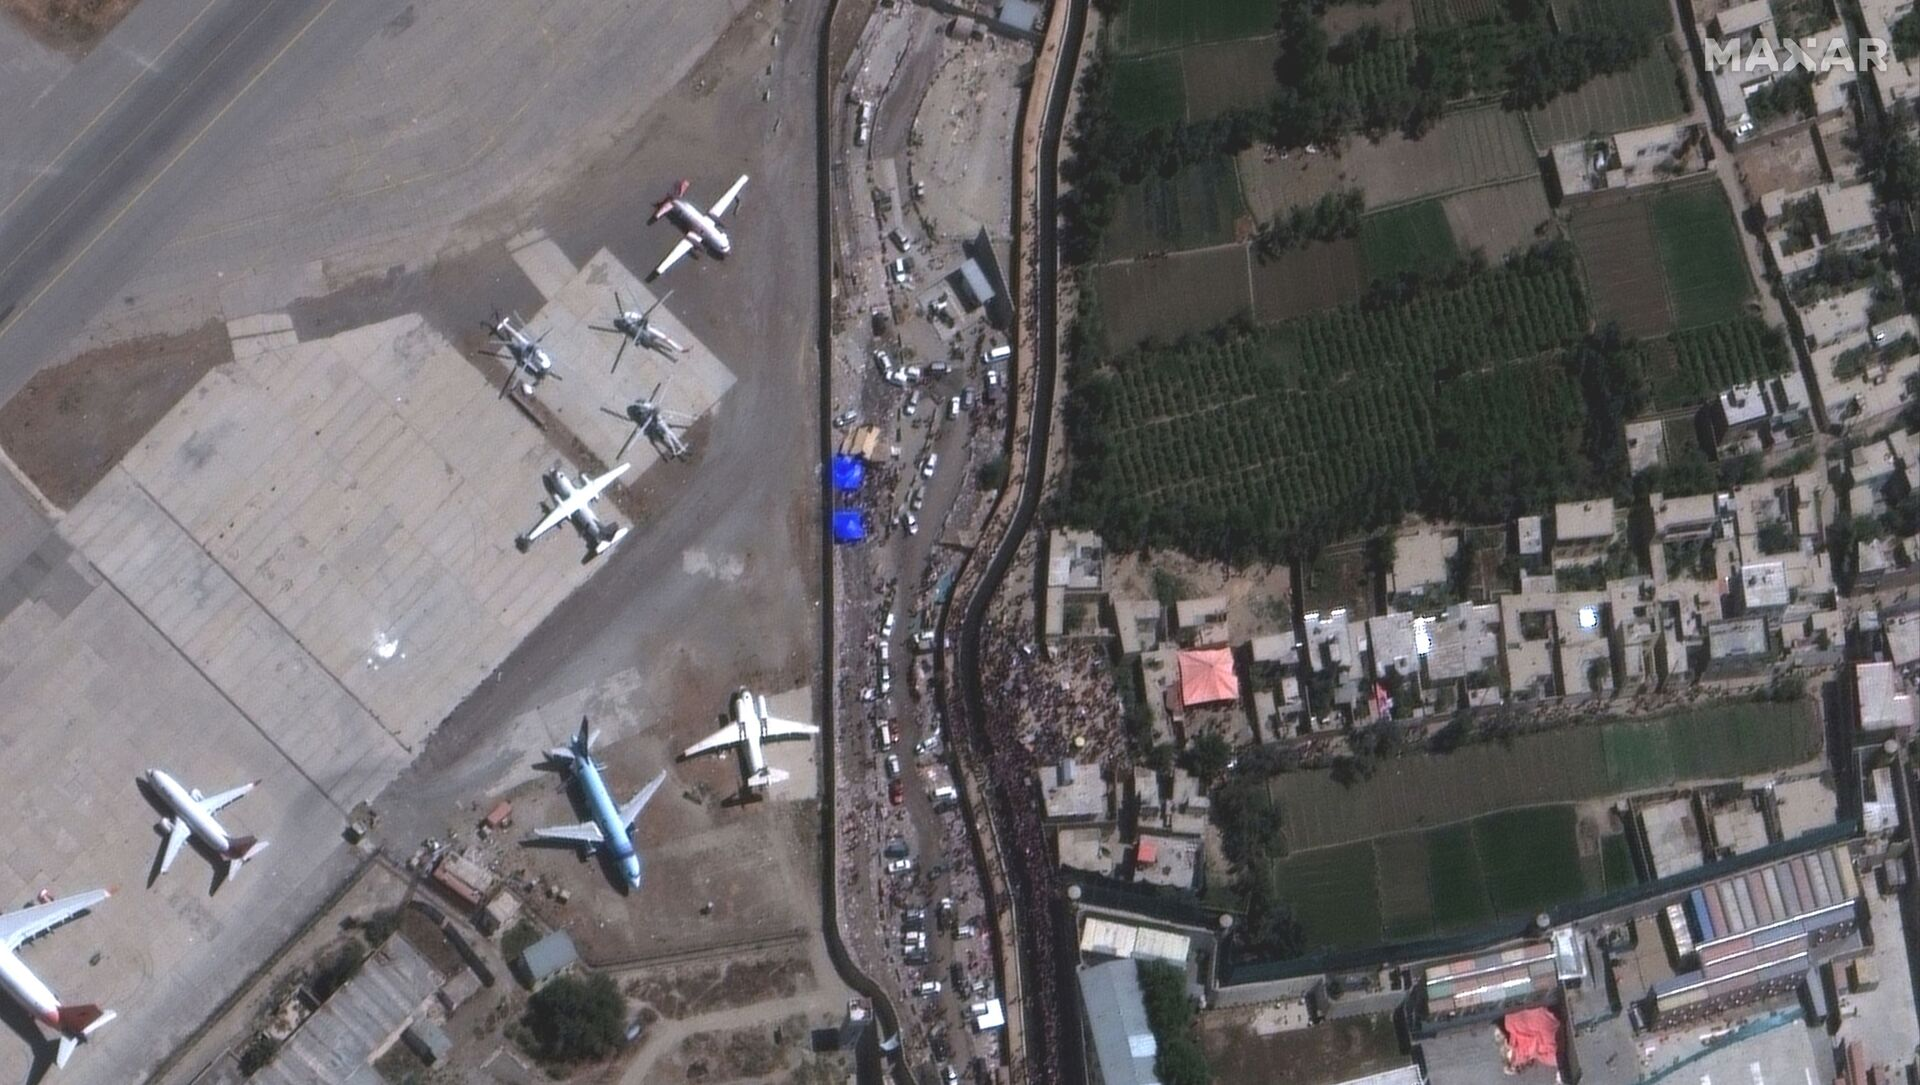 An overview of crowds at the Abbey Gate at Hamid Karzai International Airport, in Kabul, Afghanistan August 24, 2021, in this satellite image obtained by Reuters on August 26, 2021 - Sputnik International, 1920, 01.09.2021